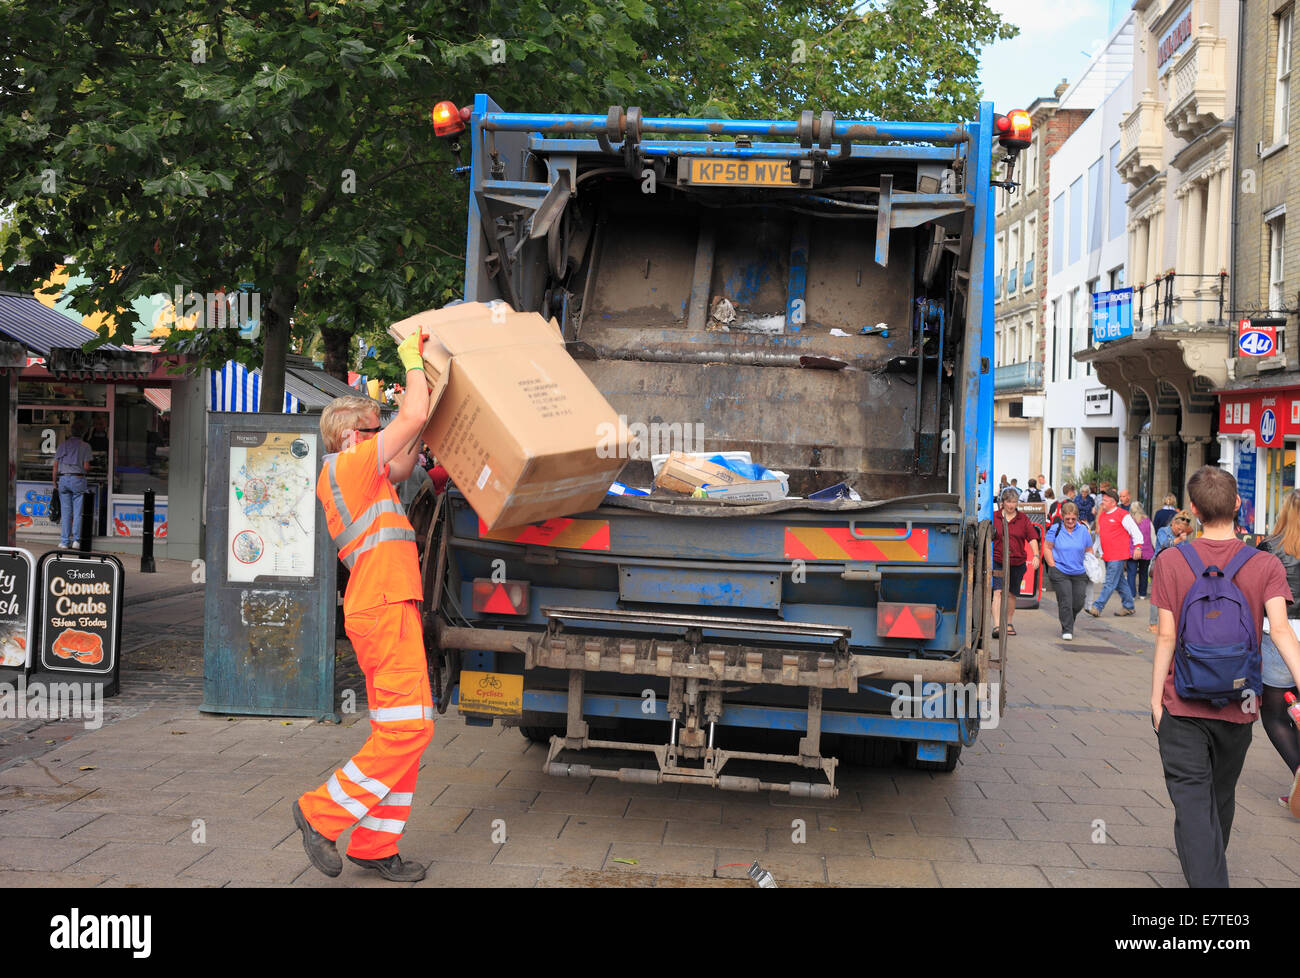 ad99e933e0 Viridor refuse lorry collecting recycling waste in Norwich city centre. -  Stock Image